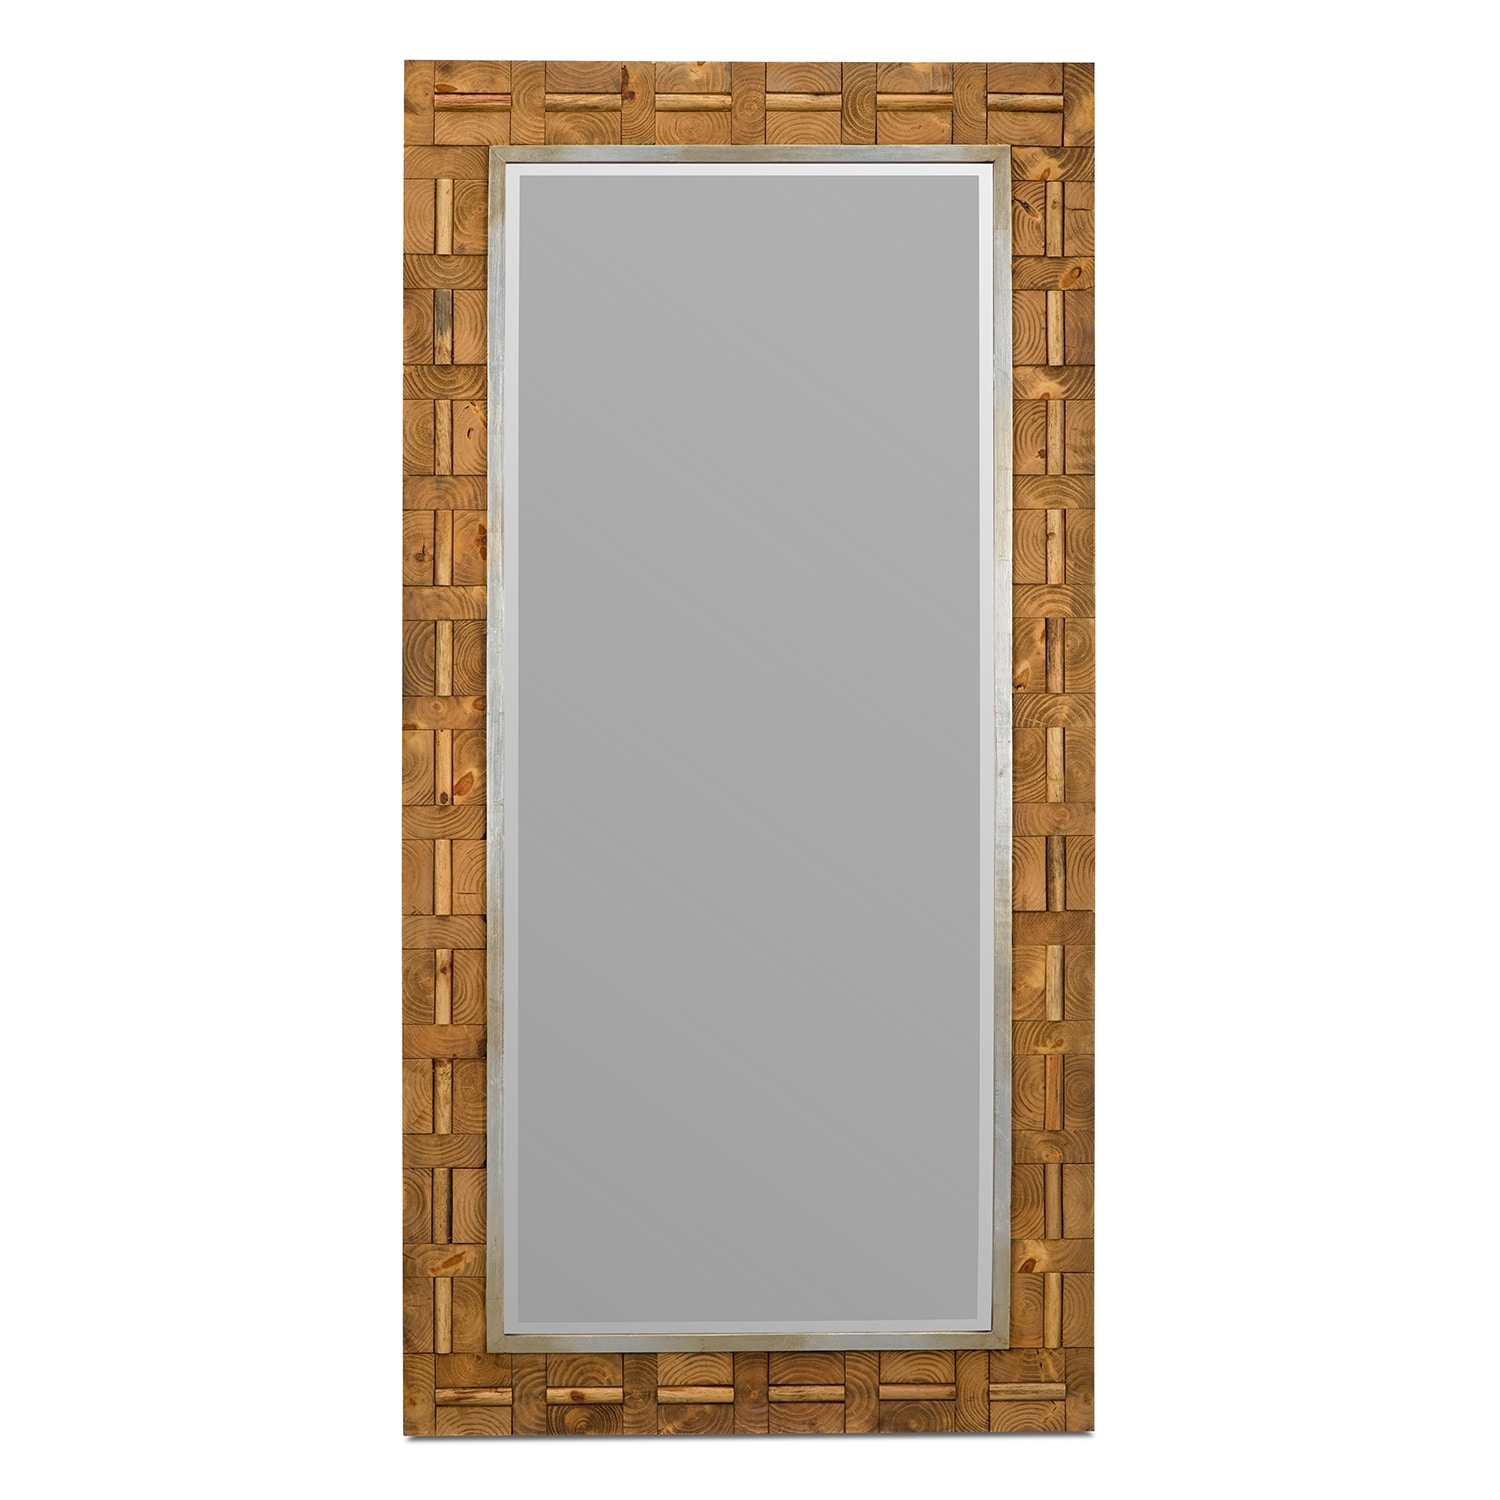 River Floor Mirror - Tan